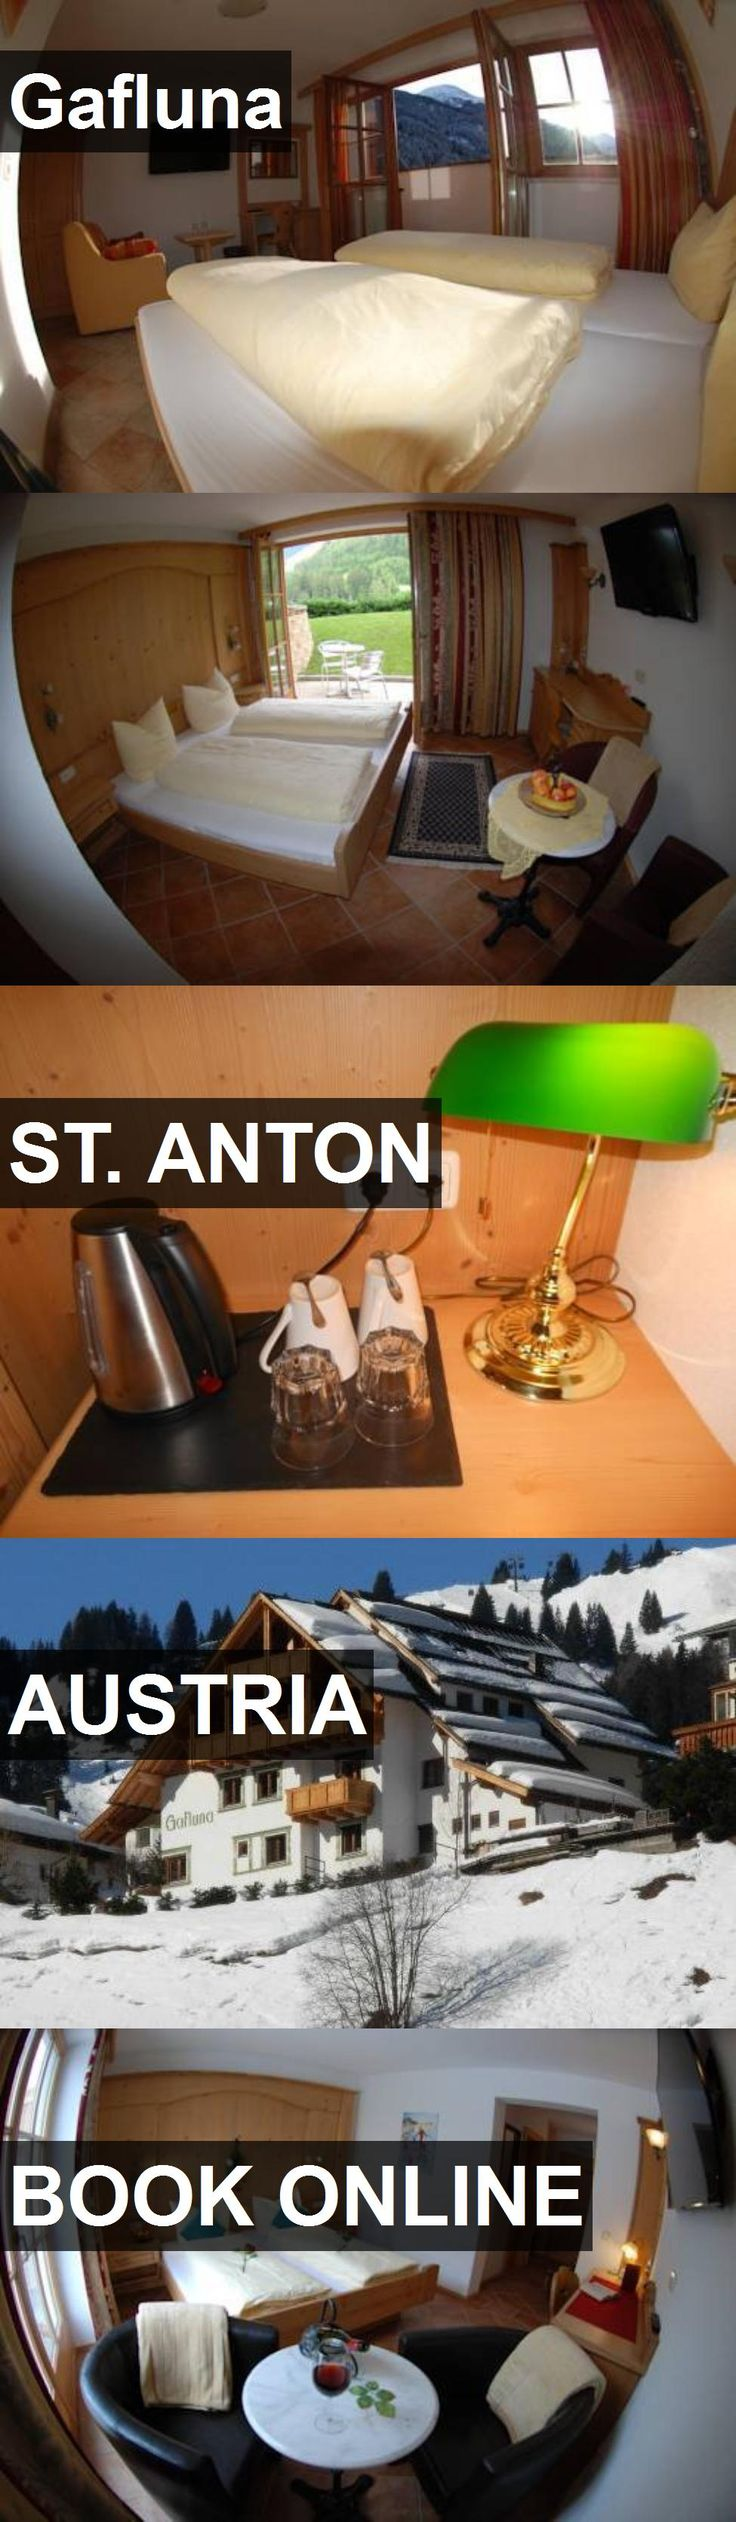 Hotel Gafluna in St. Anton, Austria. For more information, photos, reviews and best prices please follow the link. #Austria #St.Anton #travel #vacation #hotel